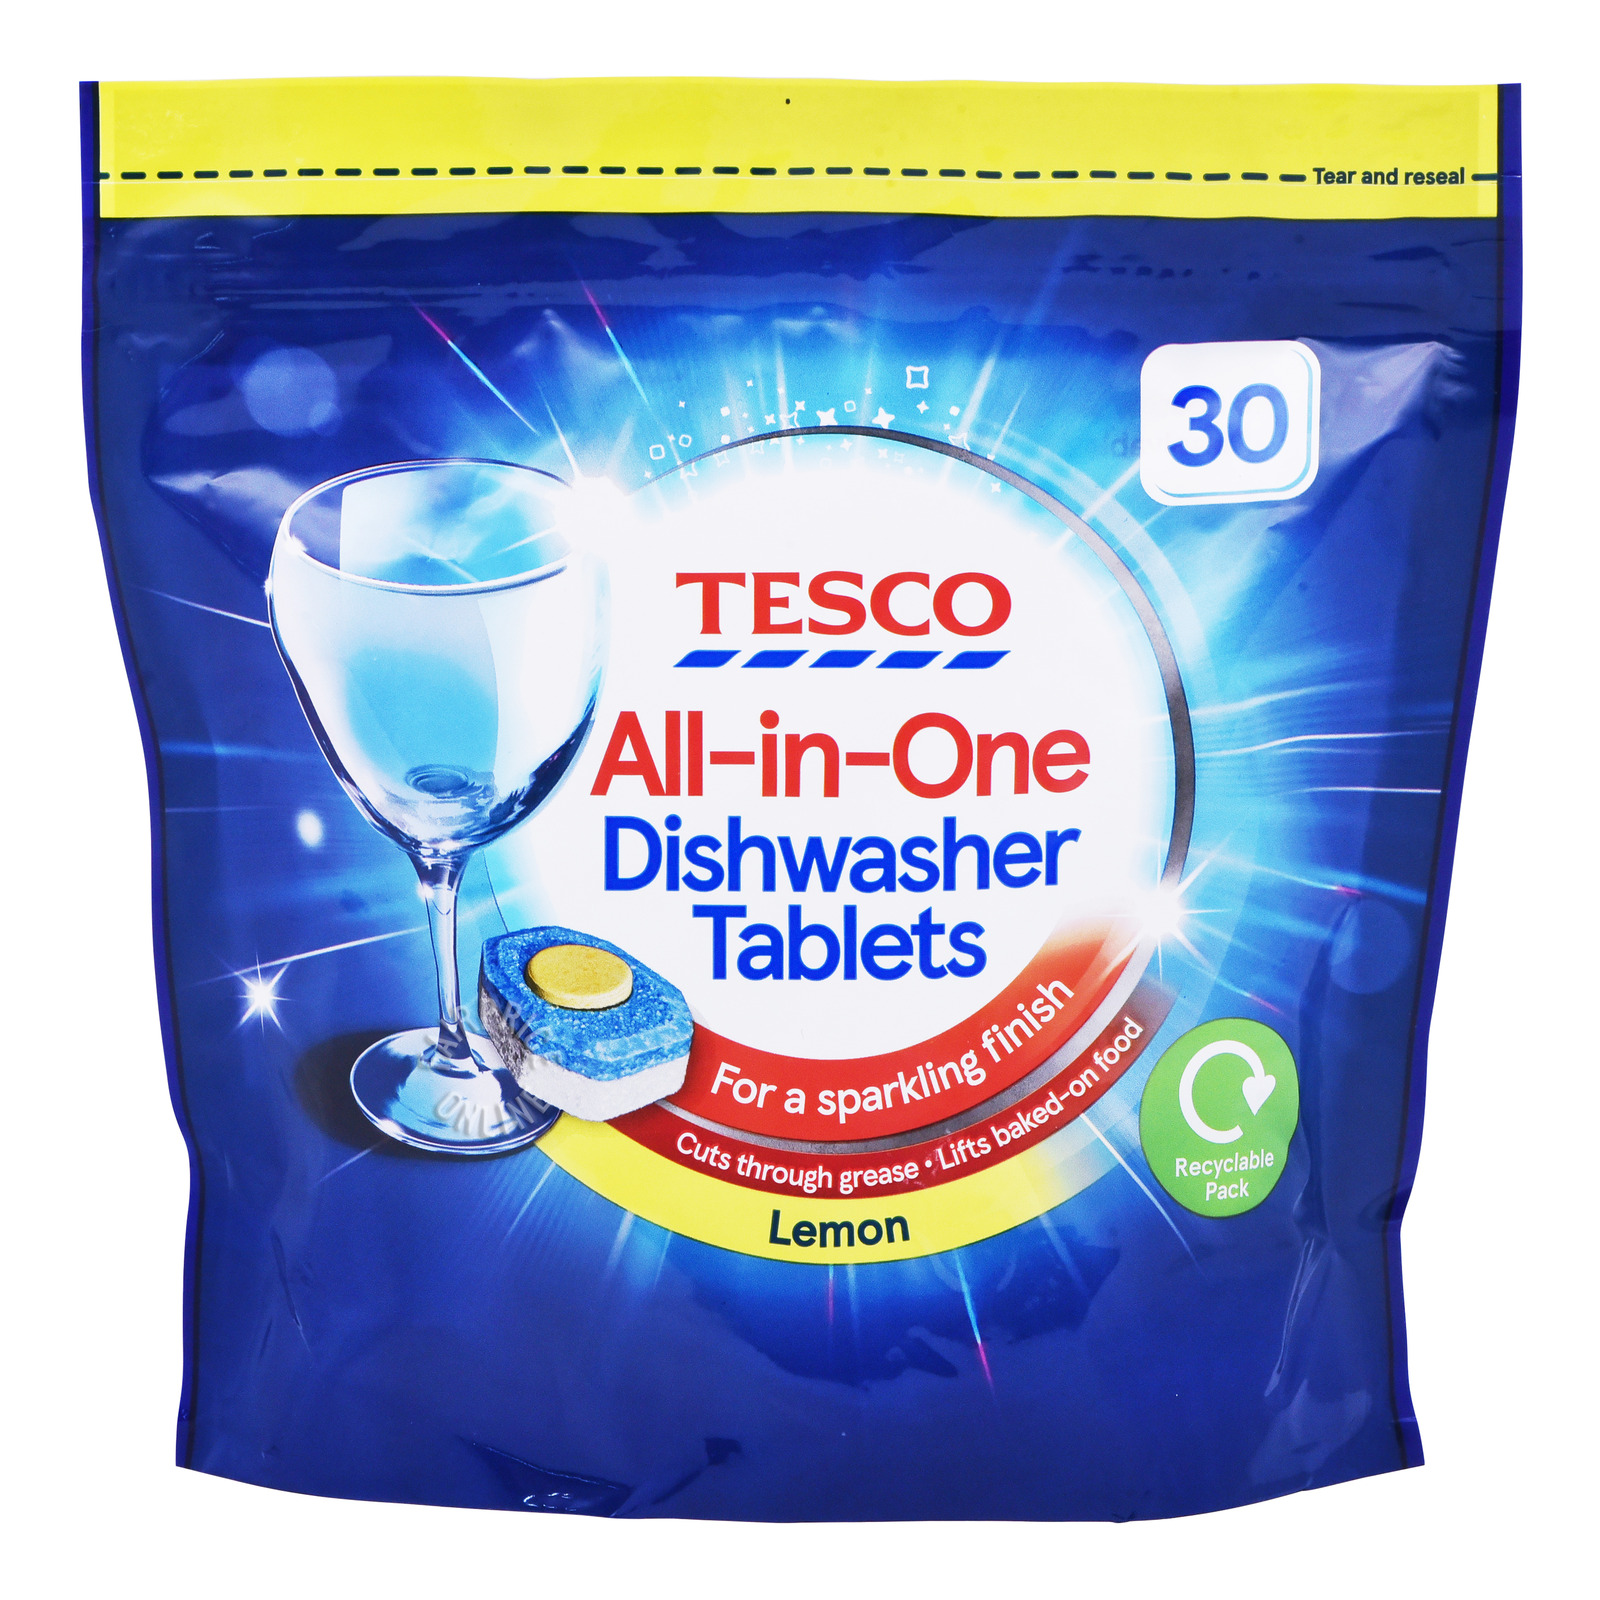 Tesco All-in-One Dishwasher Tablets - Lemon